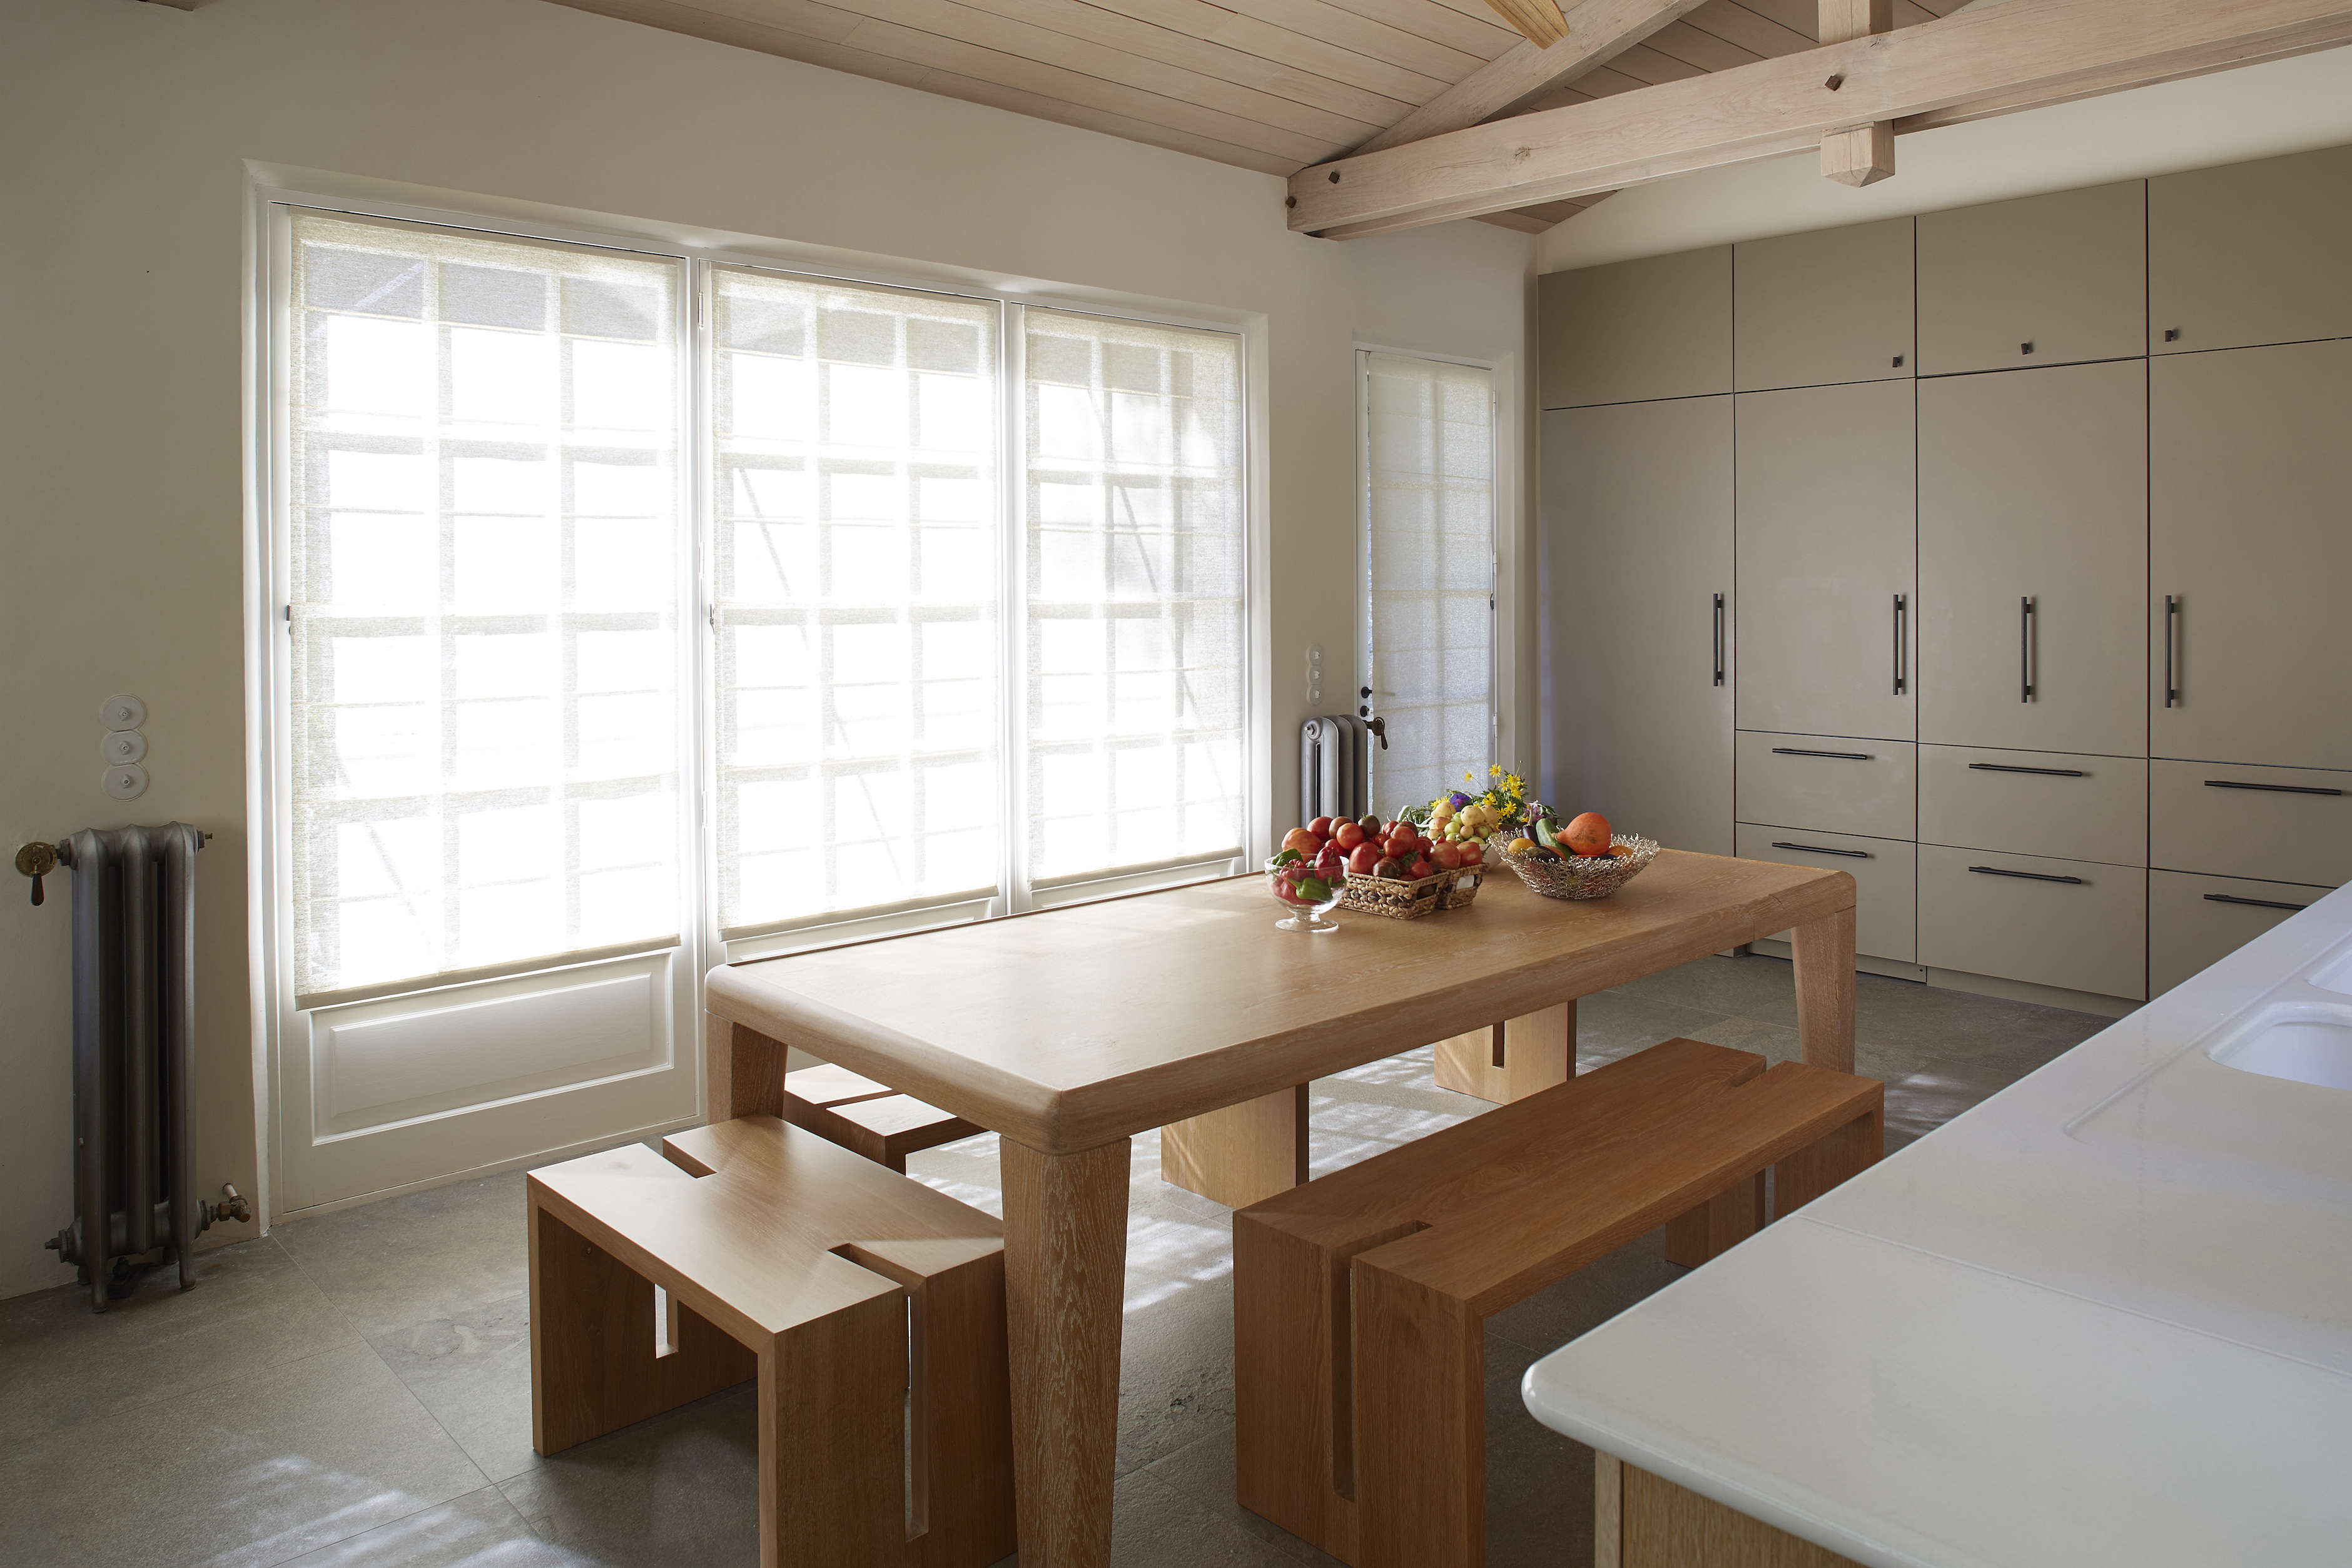 The kitchen has a minimalist table and benches that are signature EBI designs made in France. The wall of built-in storage incorporates the fridge and freezer and the door to the laundry. The floor is a mottled gray stone from Cascais, Portugal.